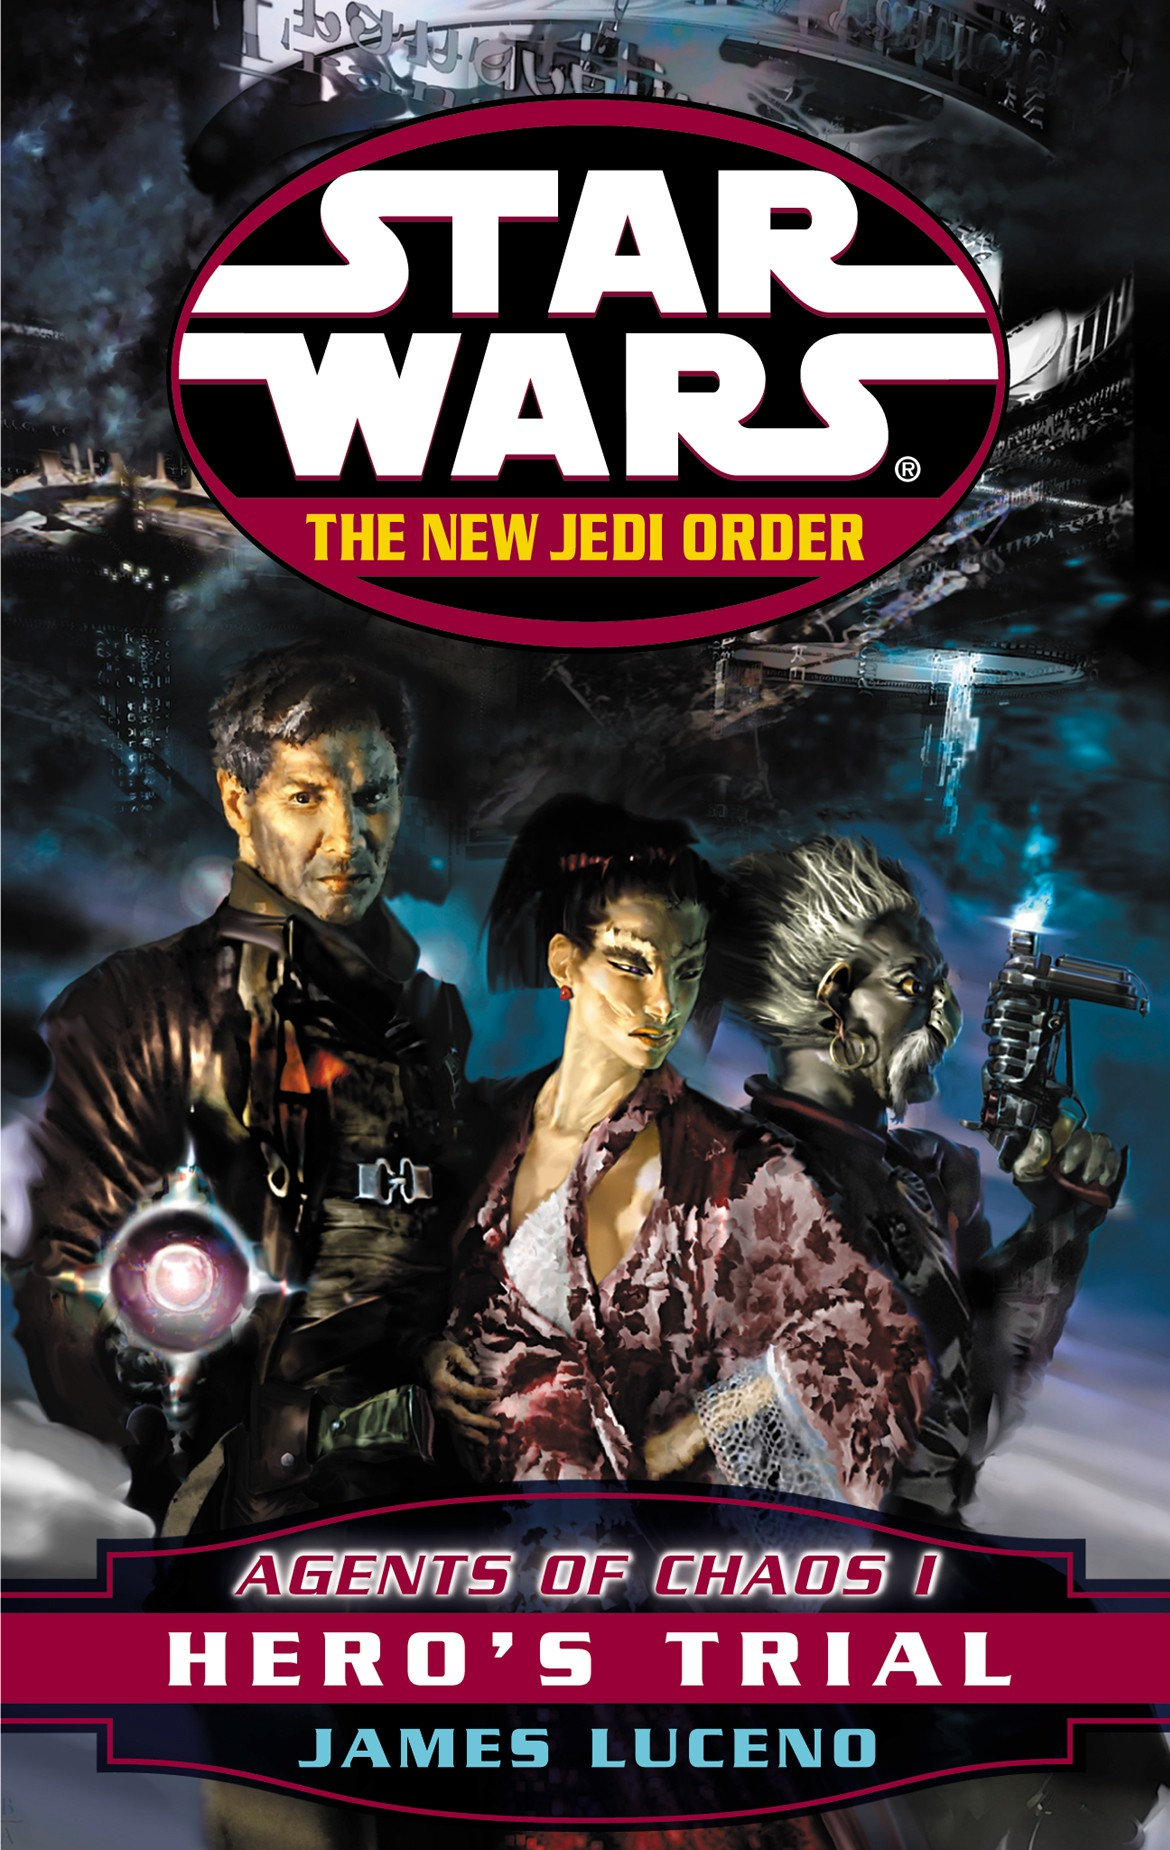 Star Wars The New Jedi Order: Agents of Chaos - Hero's Trial